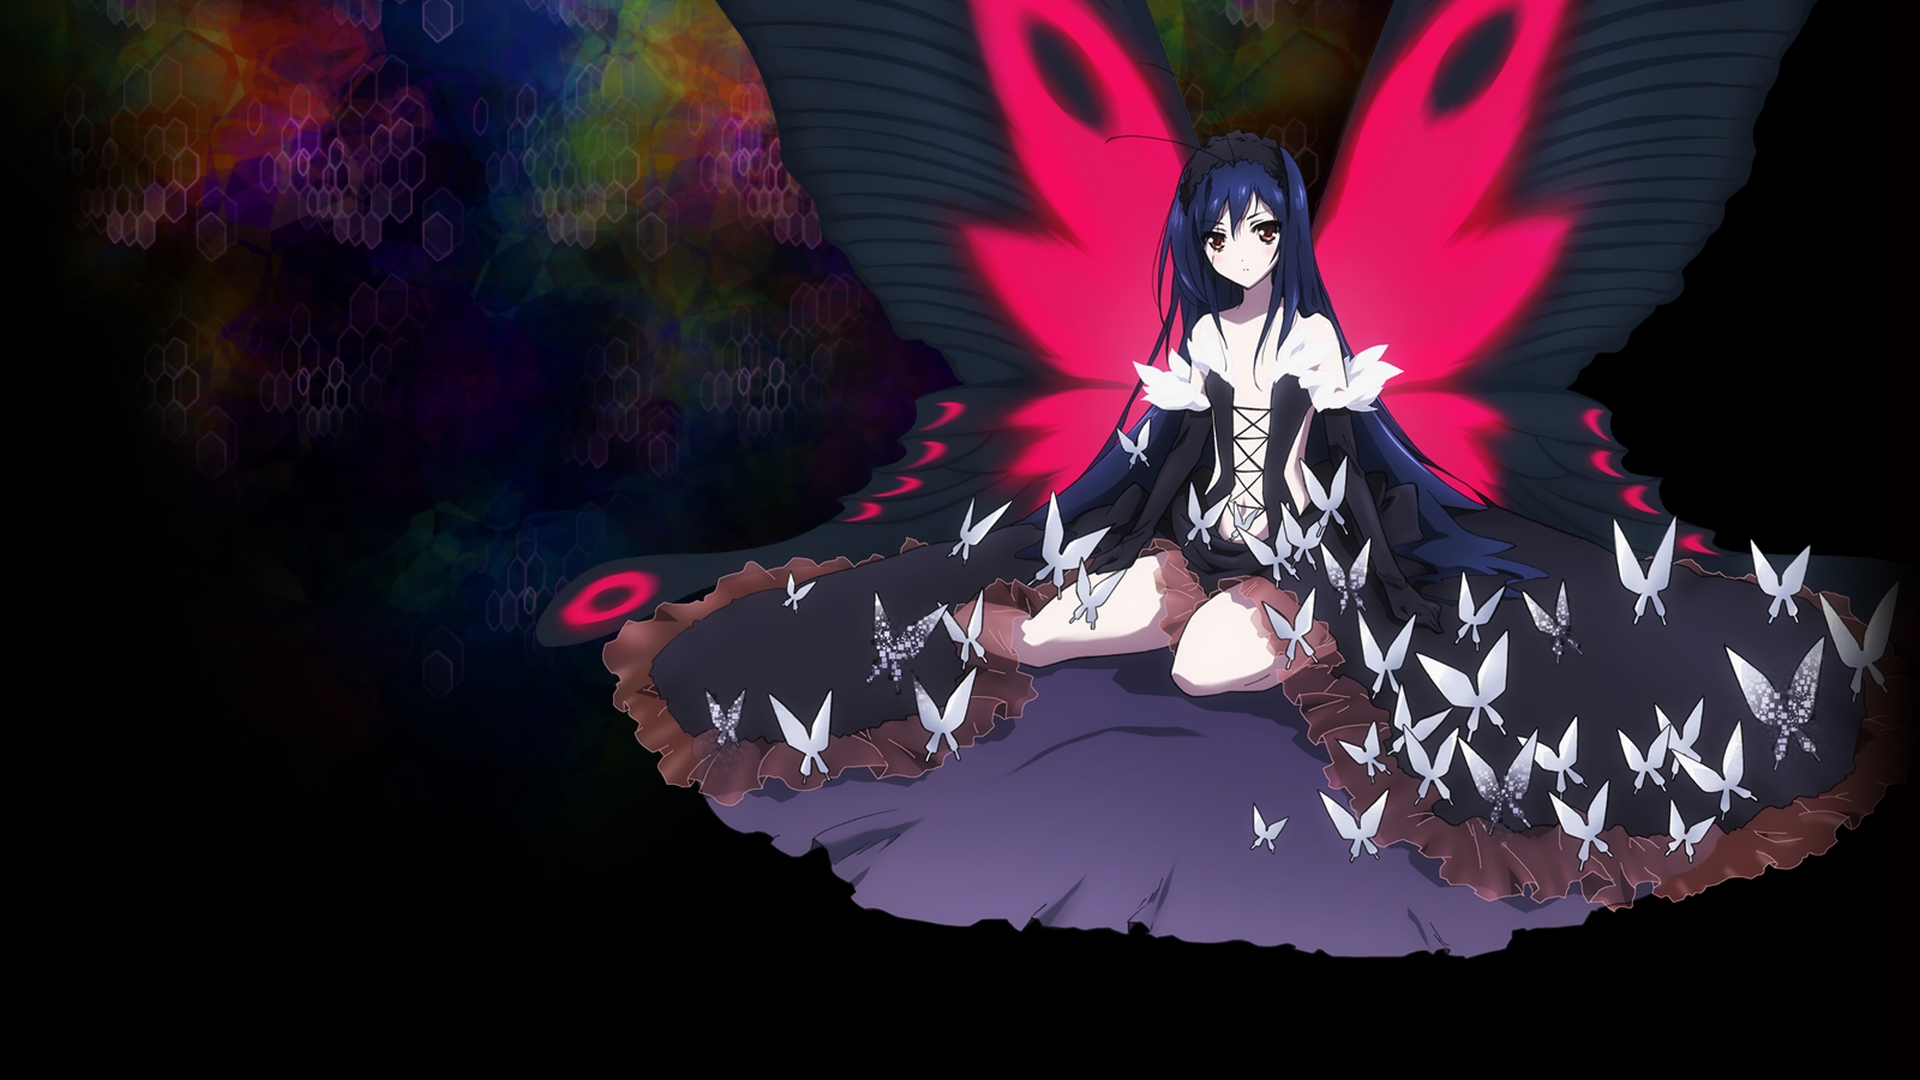 Wallpapers Accel World Girls Anime 1920x1080